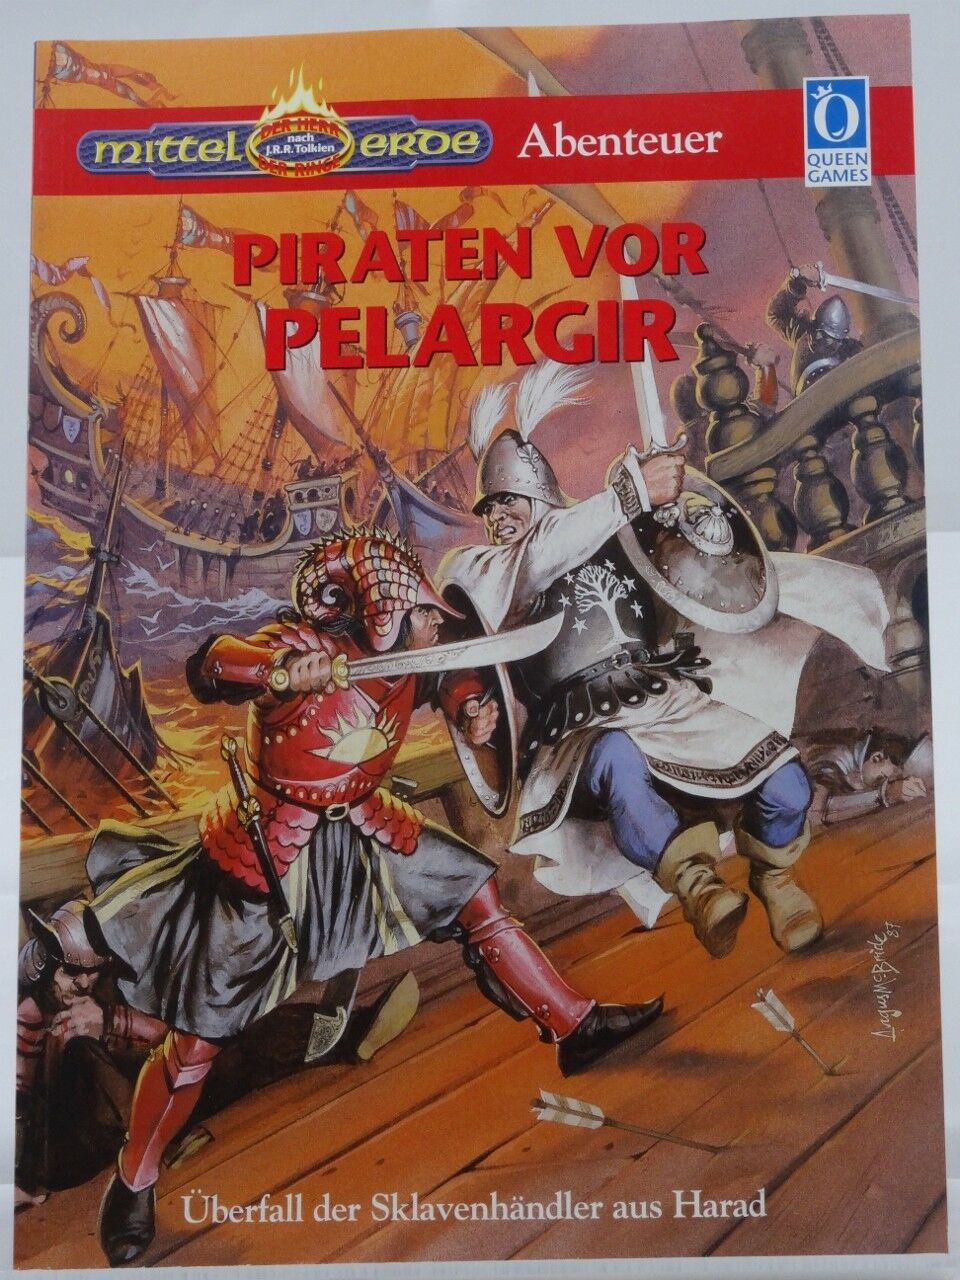 MERS - Piraten vor Pelargir - (Queen Games, Mittelerde) 101001002